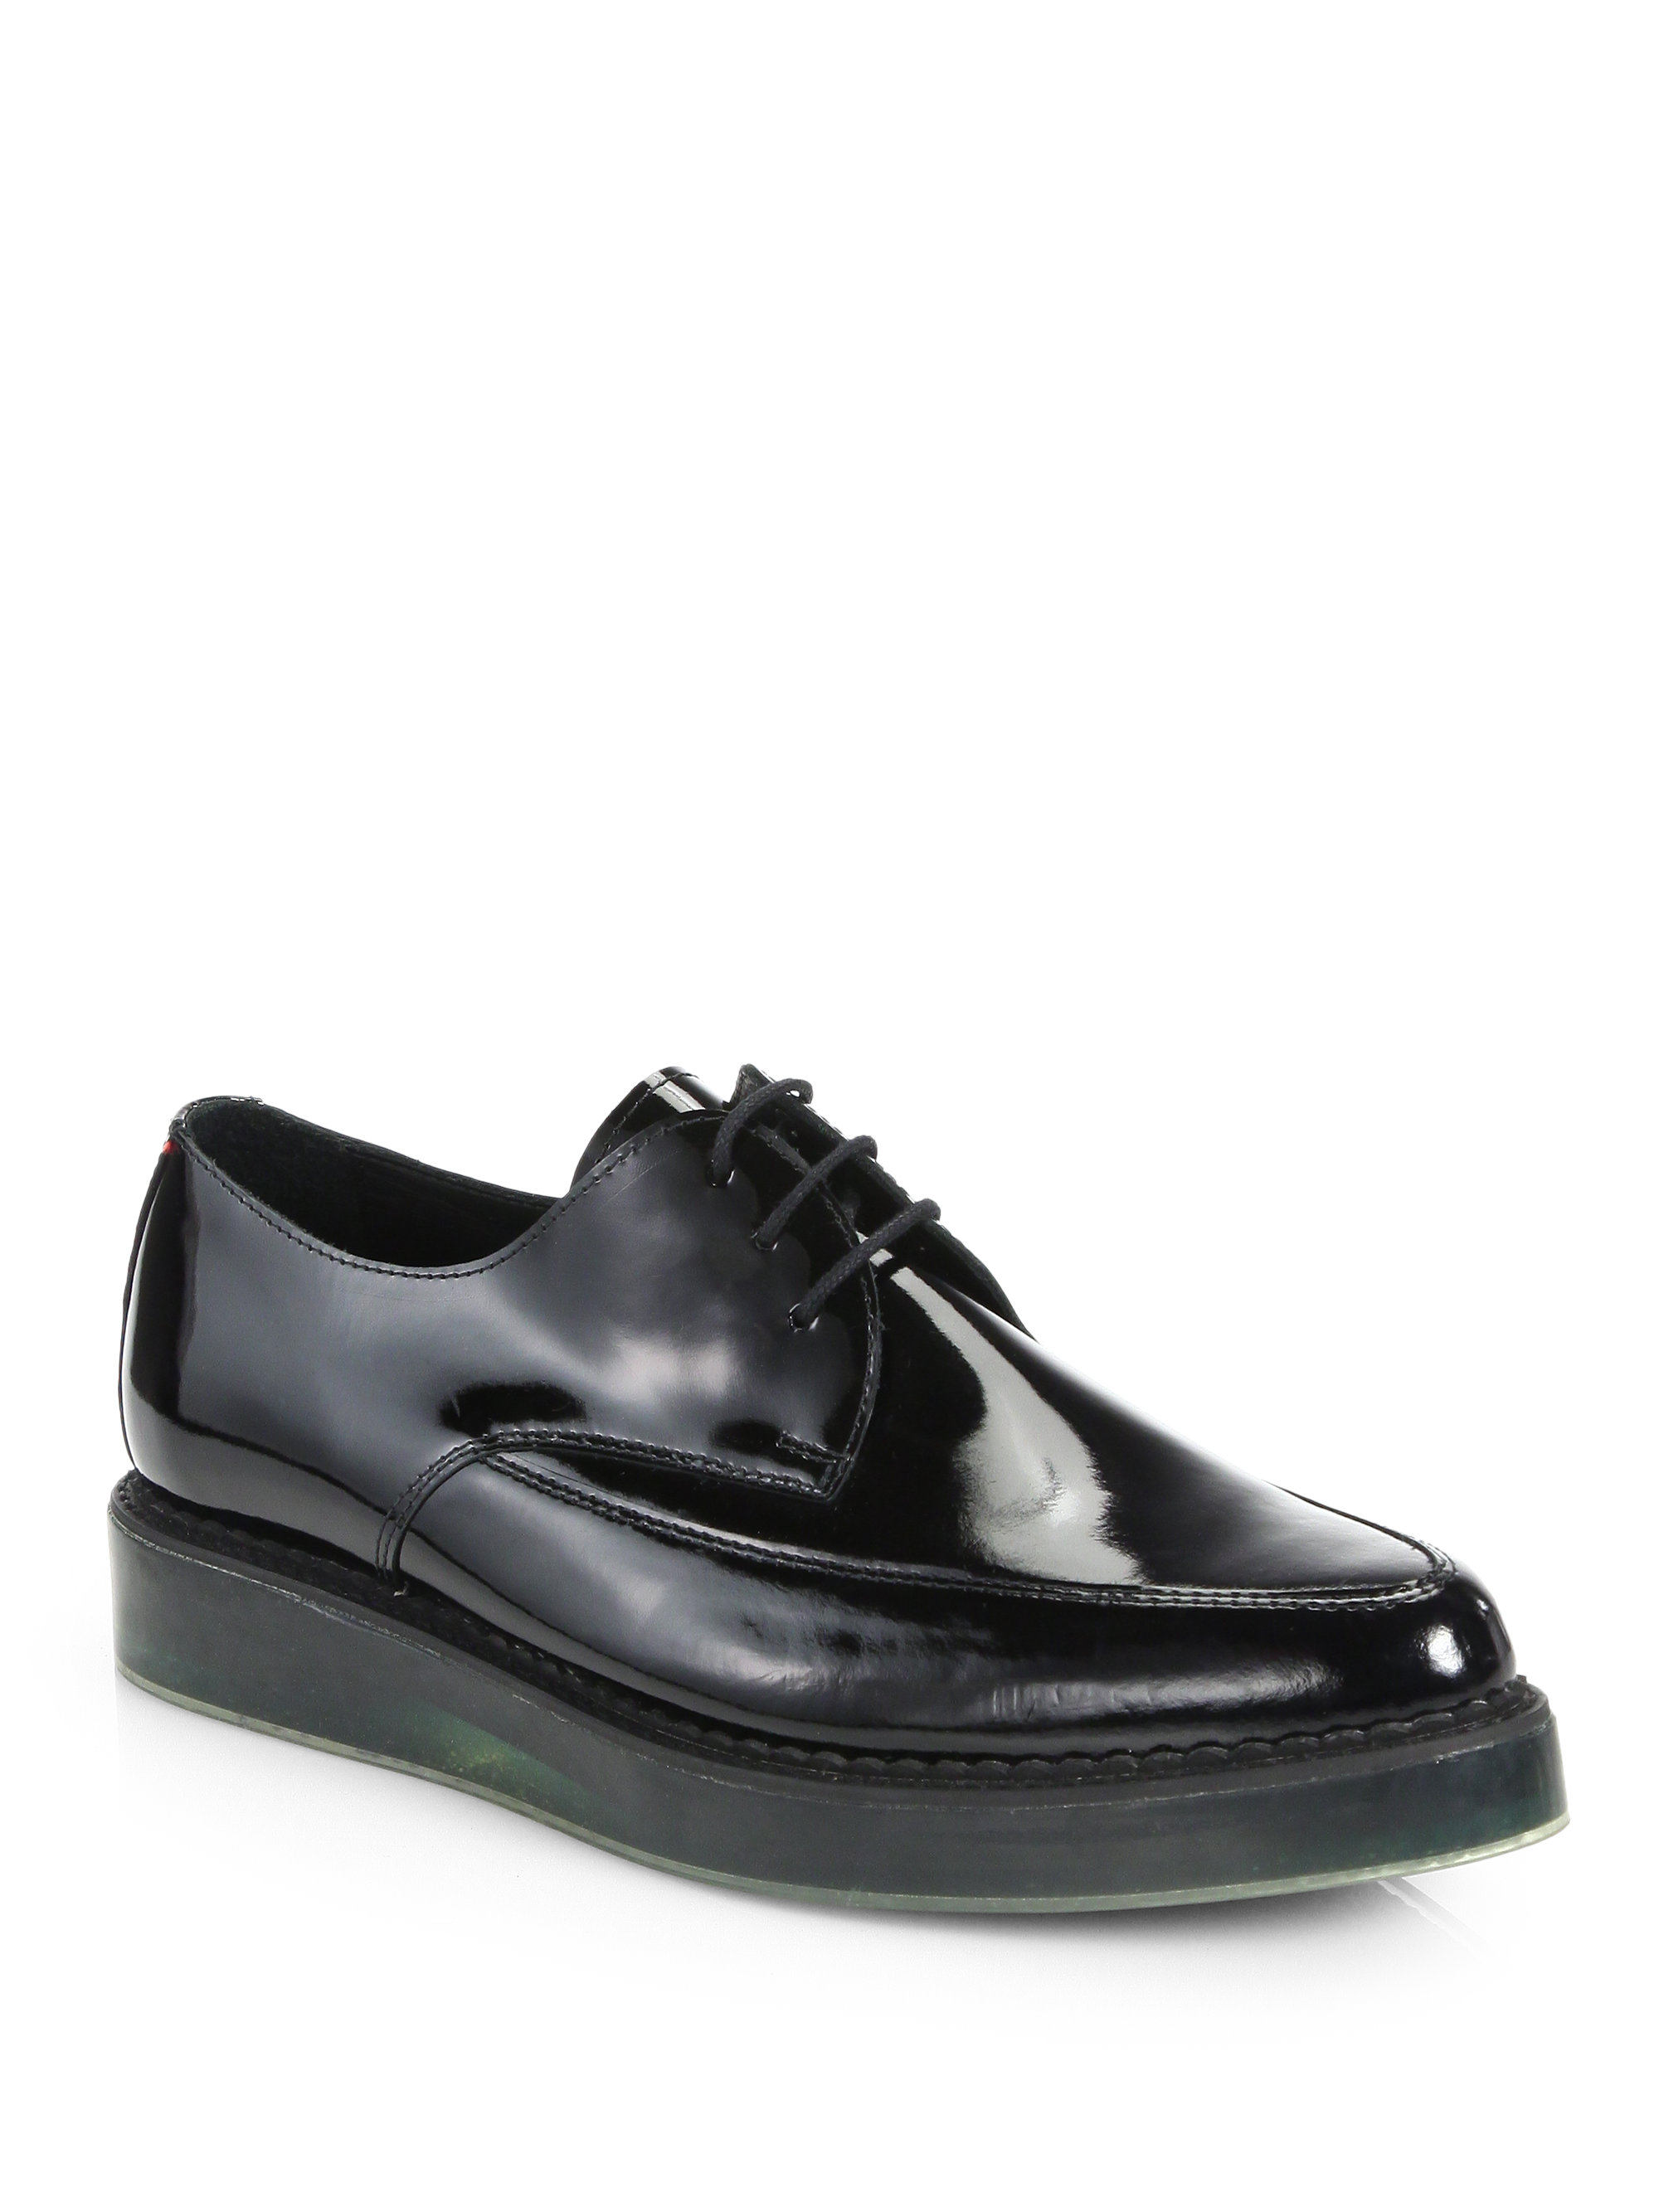 Diesel Black Leather & Nylon Brogues PCFivAx0Do